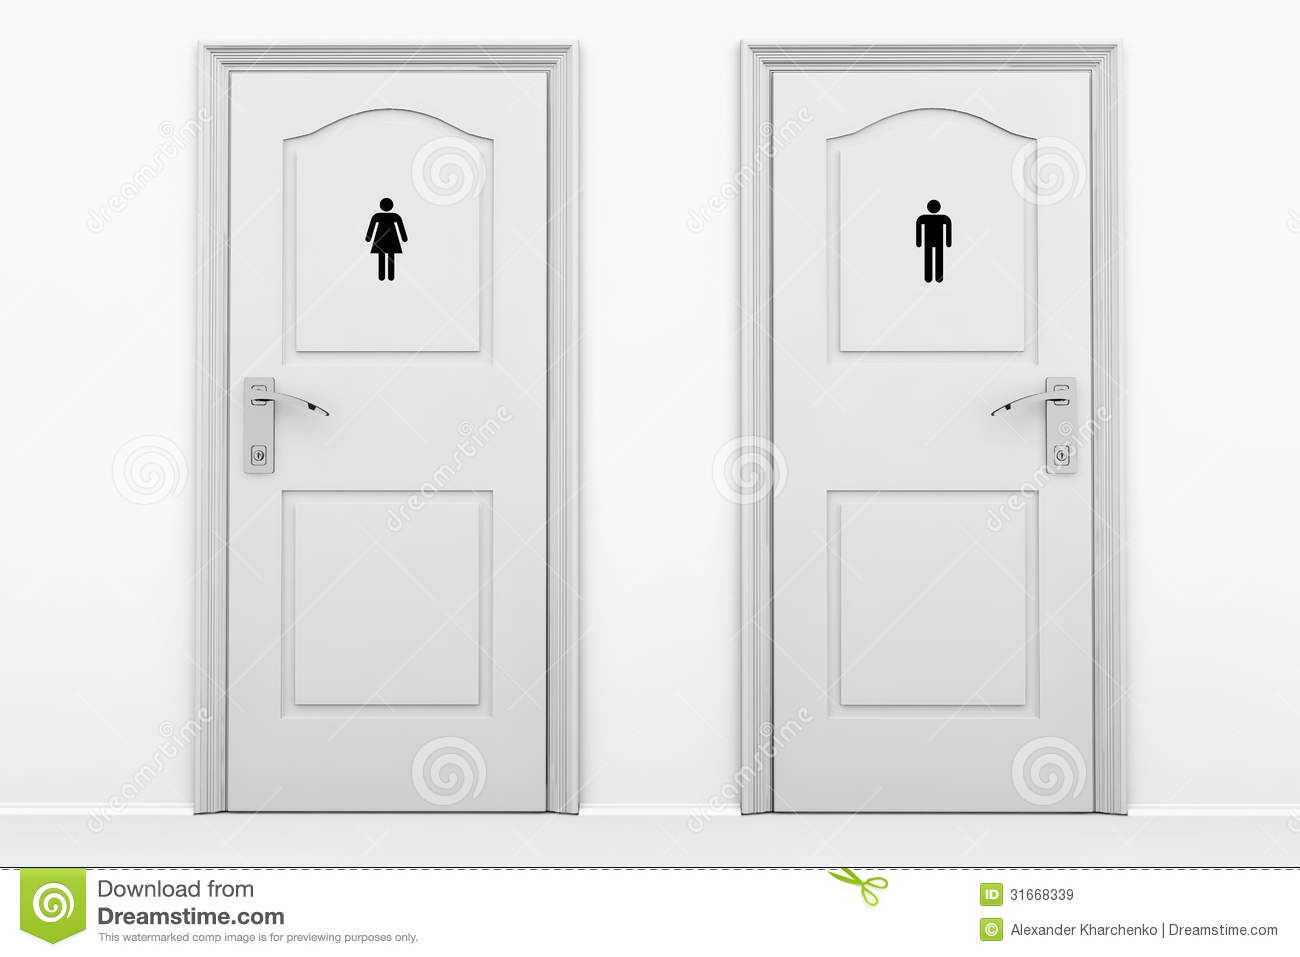 Toilet Doors For Male And Female Genders Illustration 31668339 - Megapixl  sc 1 st  Megapixl & Toilet Doors For Male And Female Genders Illustration 31668339 ...